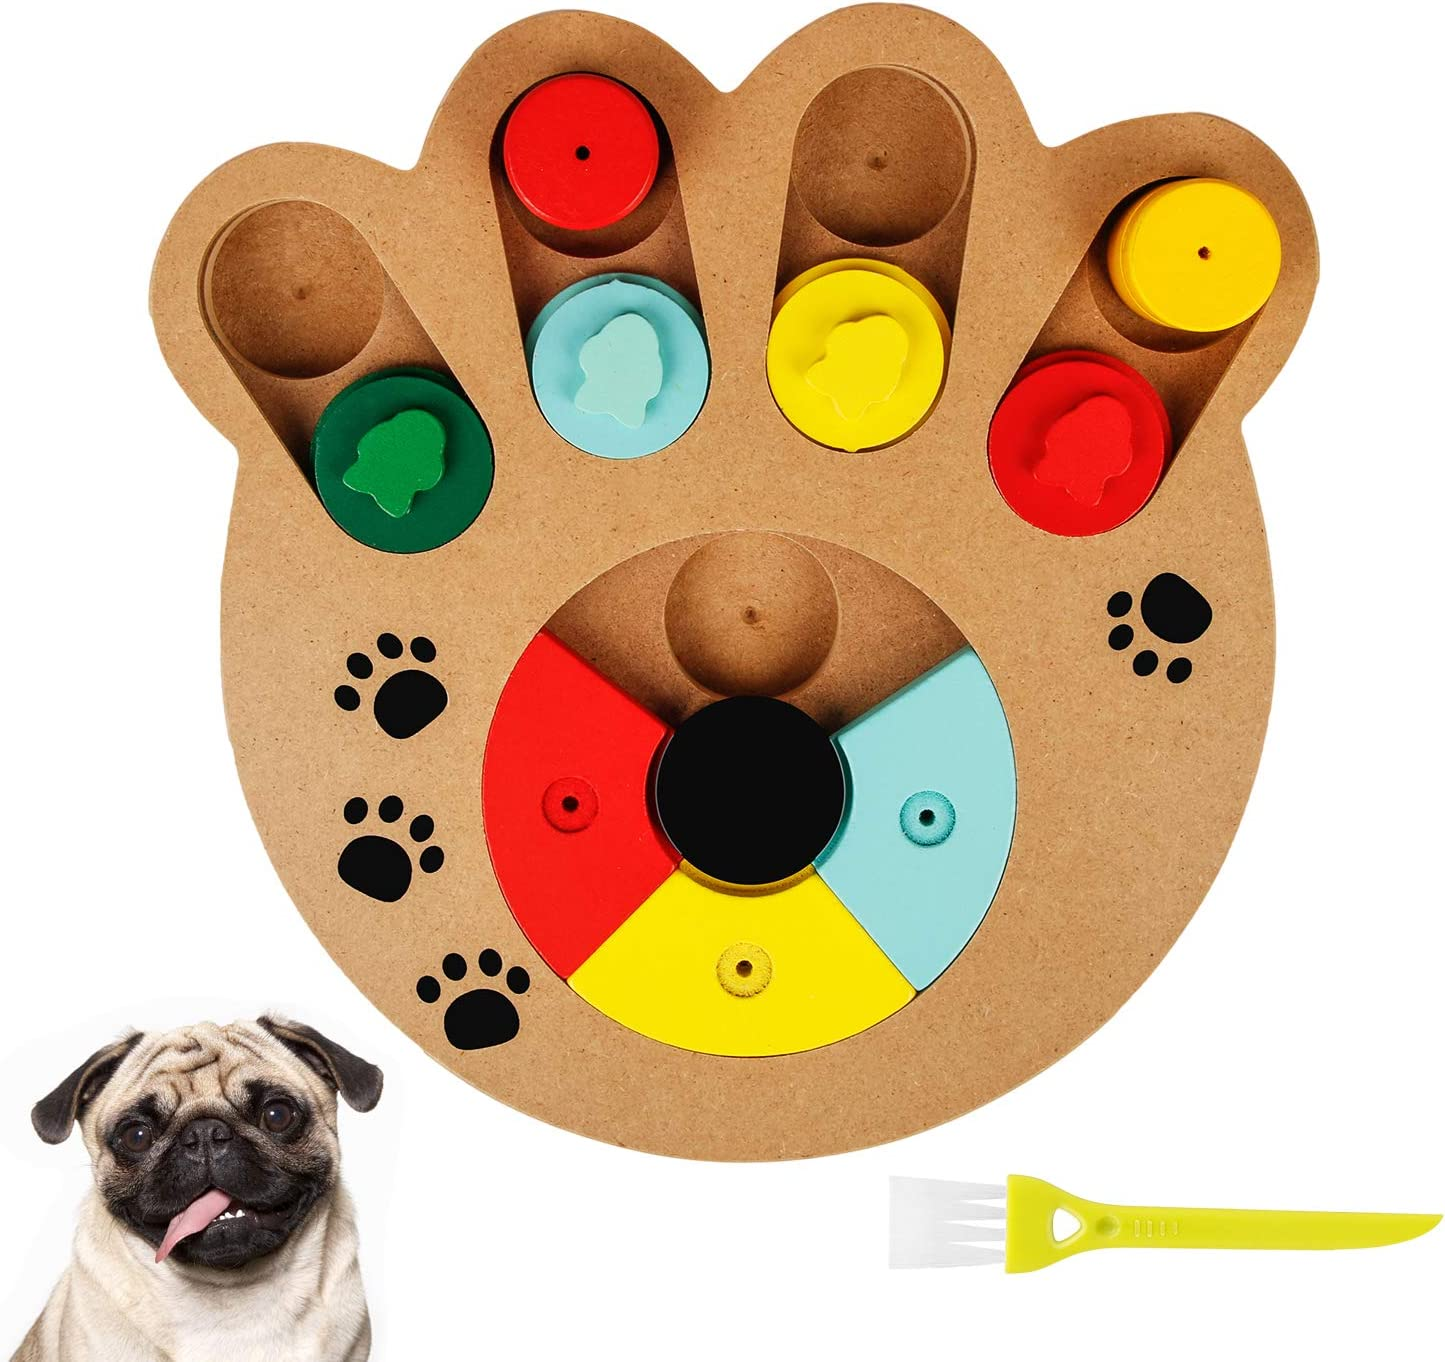 Dog Puzzle Toys for Large Medium Small Smart Dogs Puppies, Interactive Puzzle Game Dog Toys Pet IQ Treat Dispenser Slow Feeder Dog Food Puzzle Bowl - Treat-Dispensing Training Puzzle Dog Toy